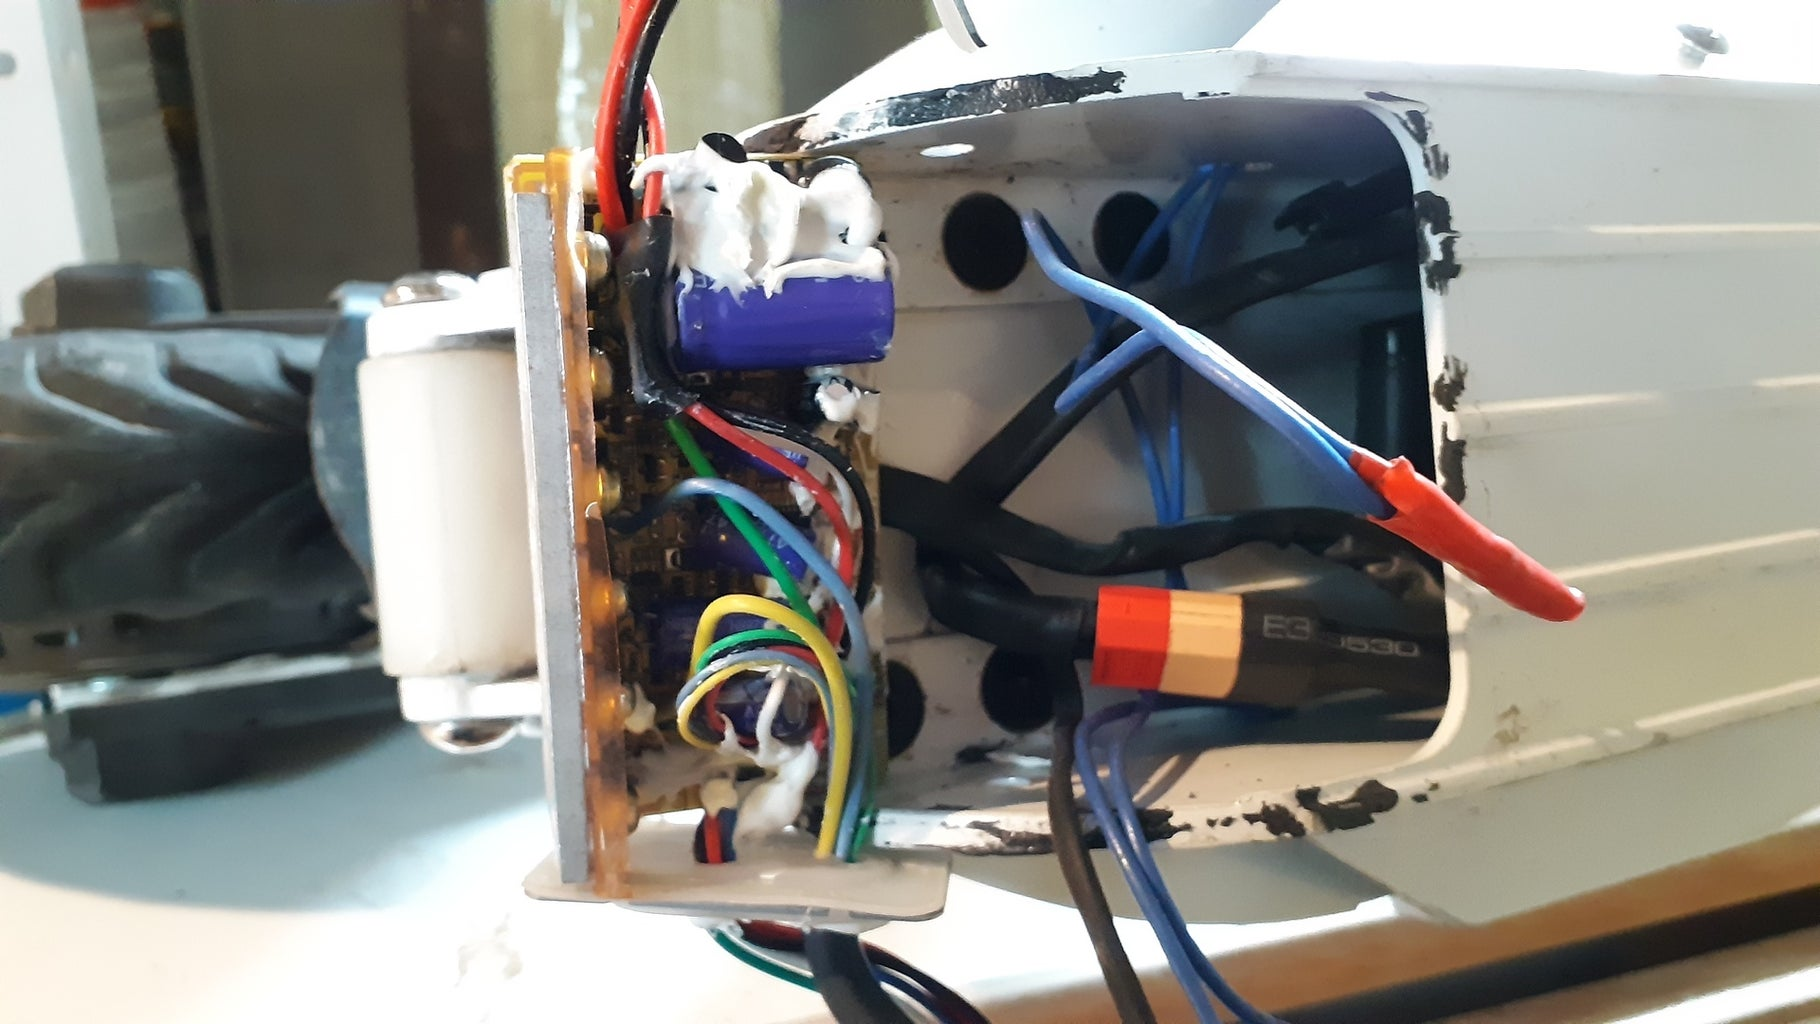 Search Place for Rear Motor Controller